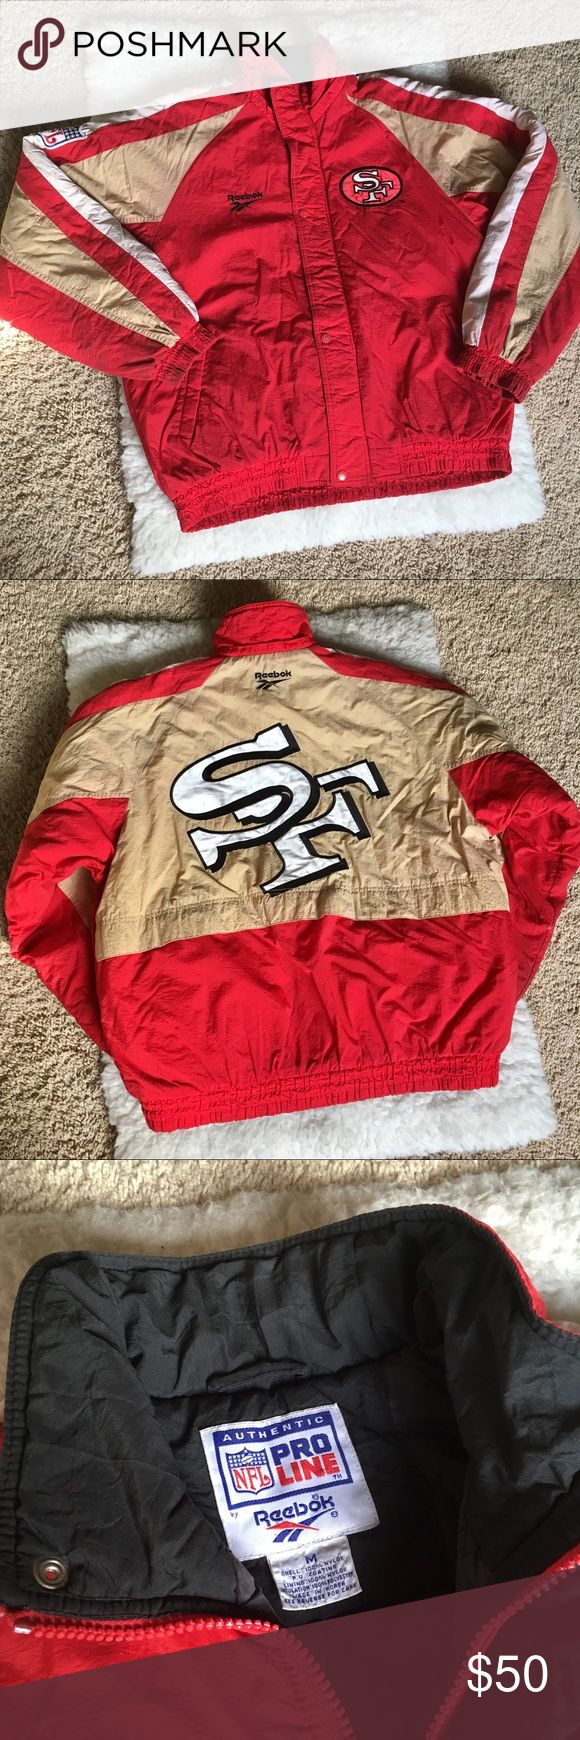 "Pro line Reebok SF 49ers Jacket Pro line Reebok SF 49ers Jacket - Size Medium - Tear on right sleeve. - Says ""SF"" on the back - Color: Red, Tan, White - Team: San Francisco 49ers Pro Line Reebok Jackets & Coats"